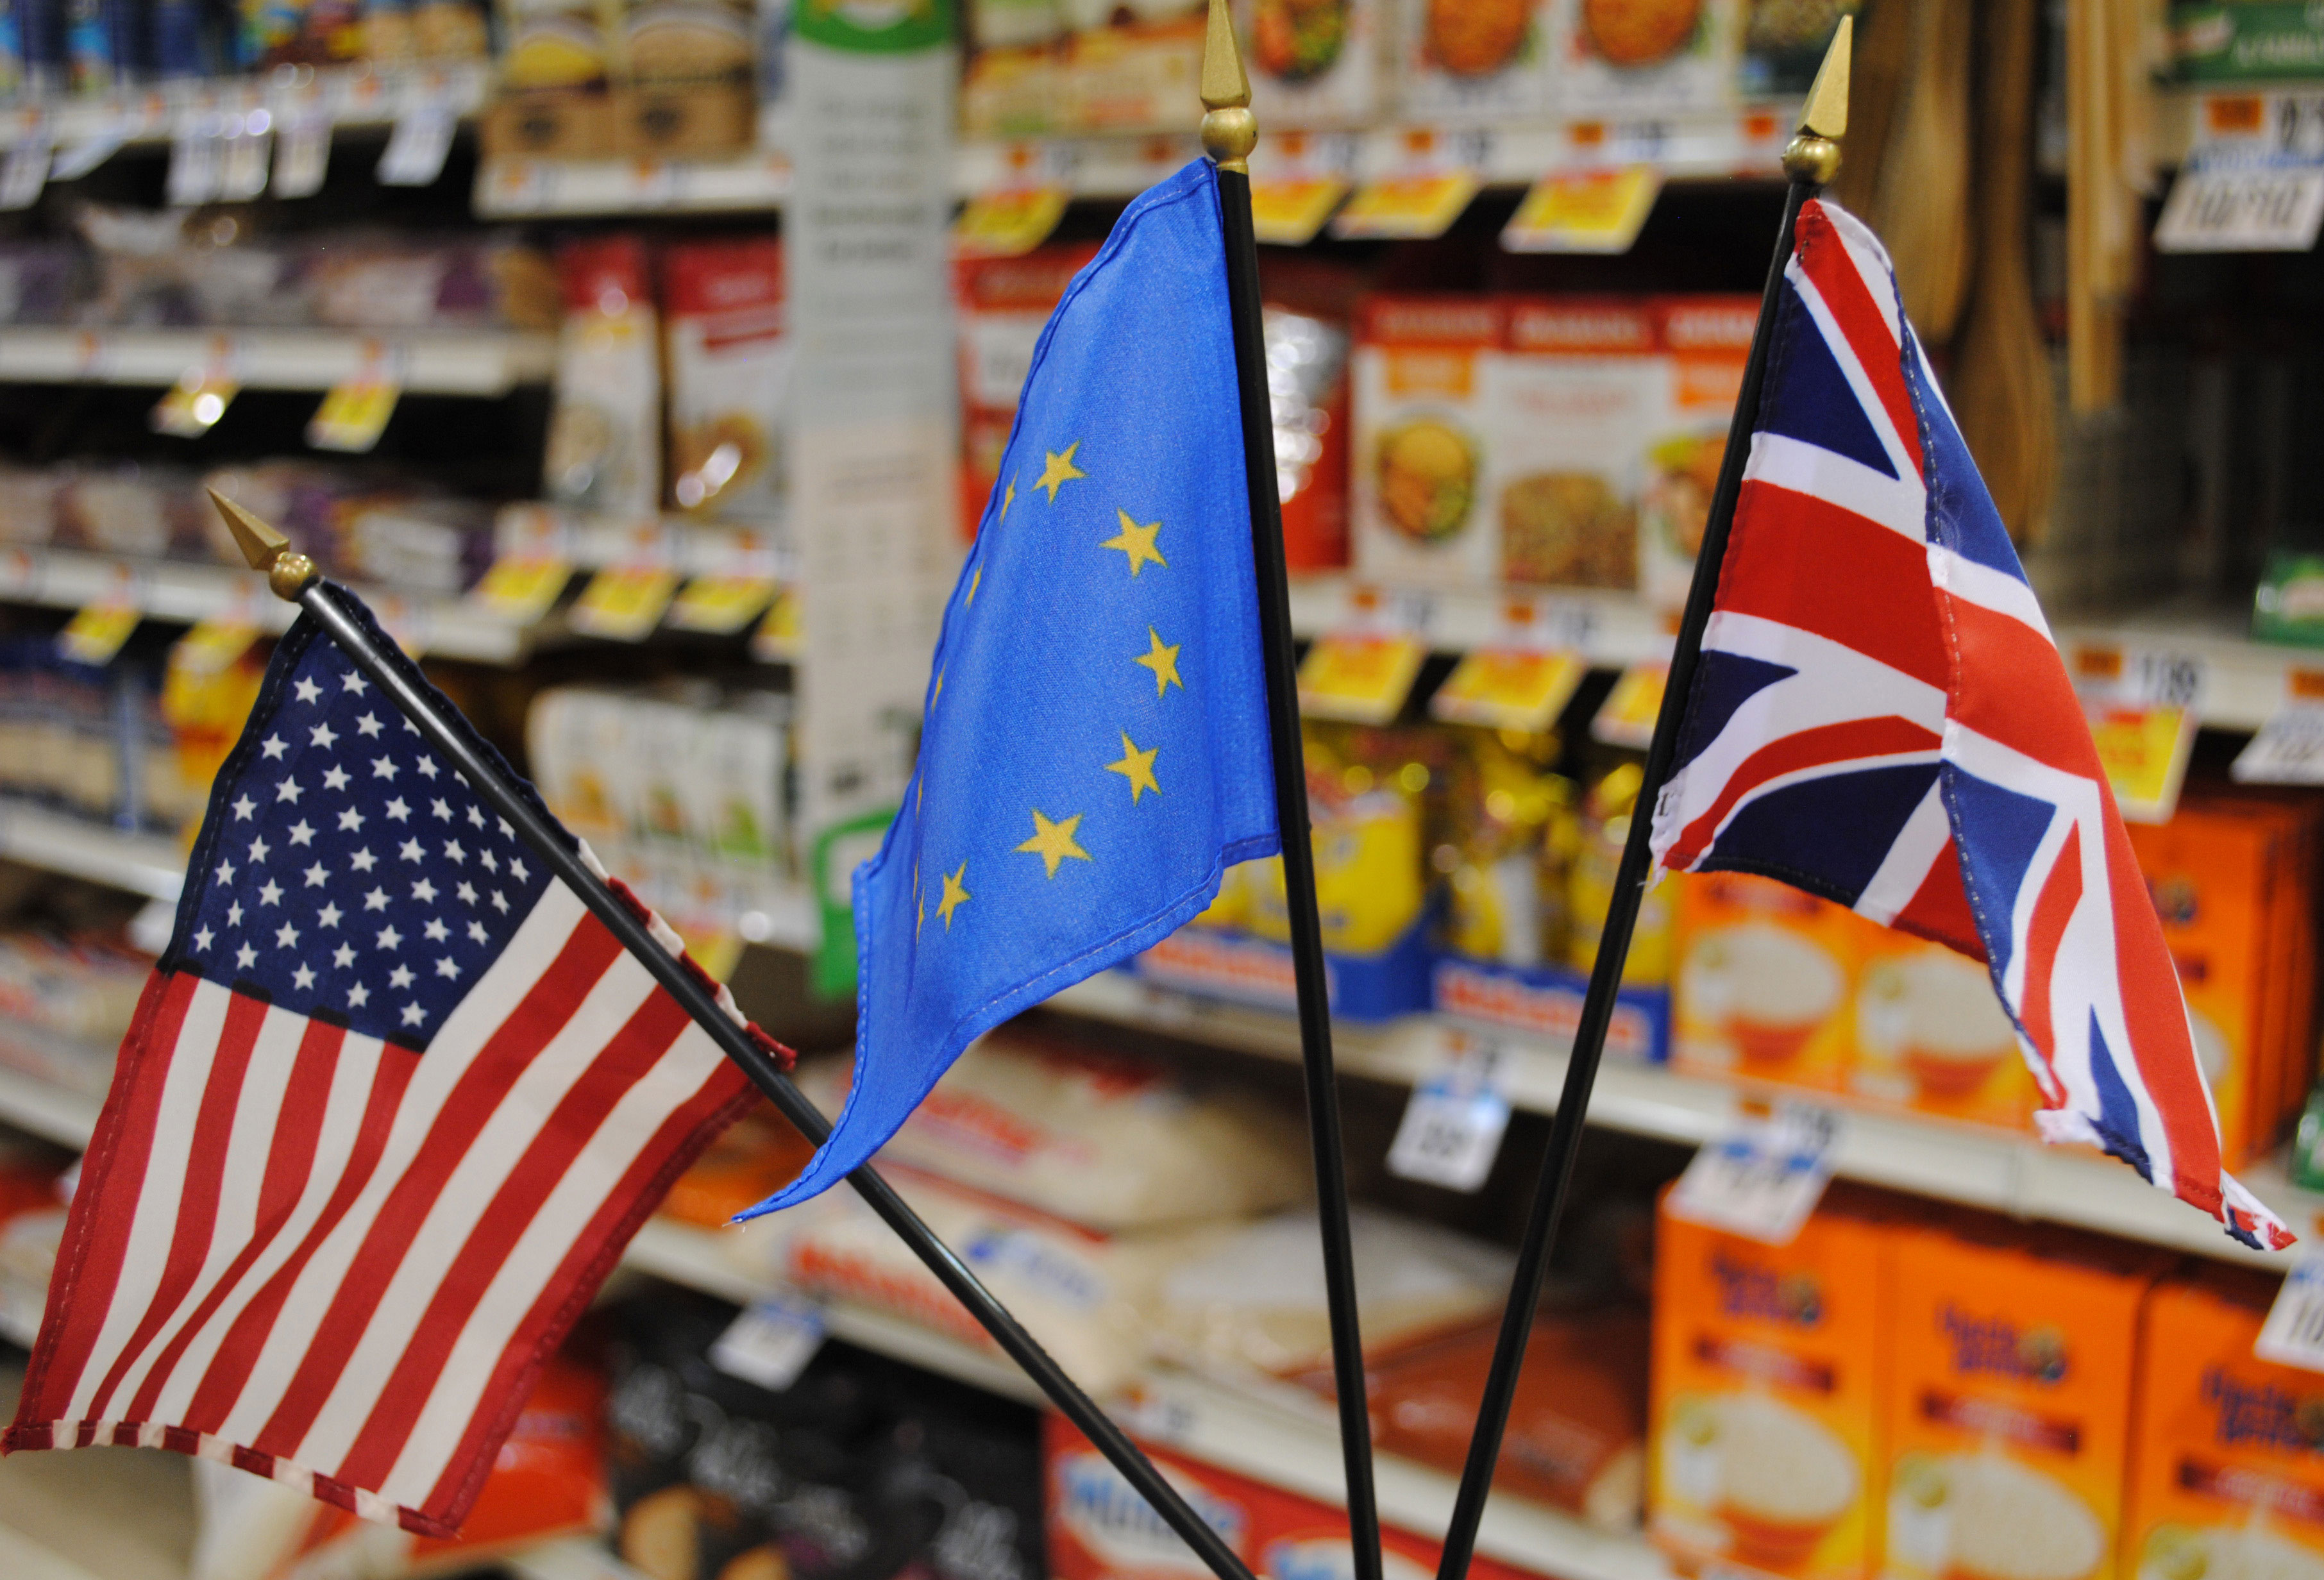 Image of three flags - U.S., EU & UK - in front of supermarket rice aisle